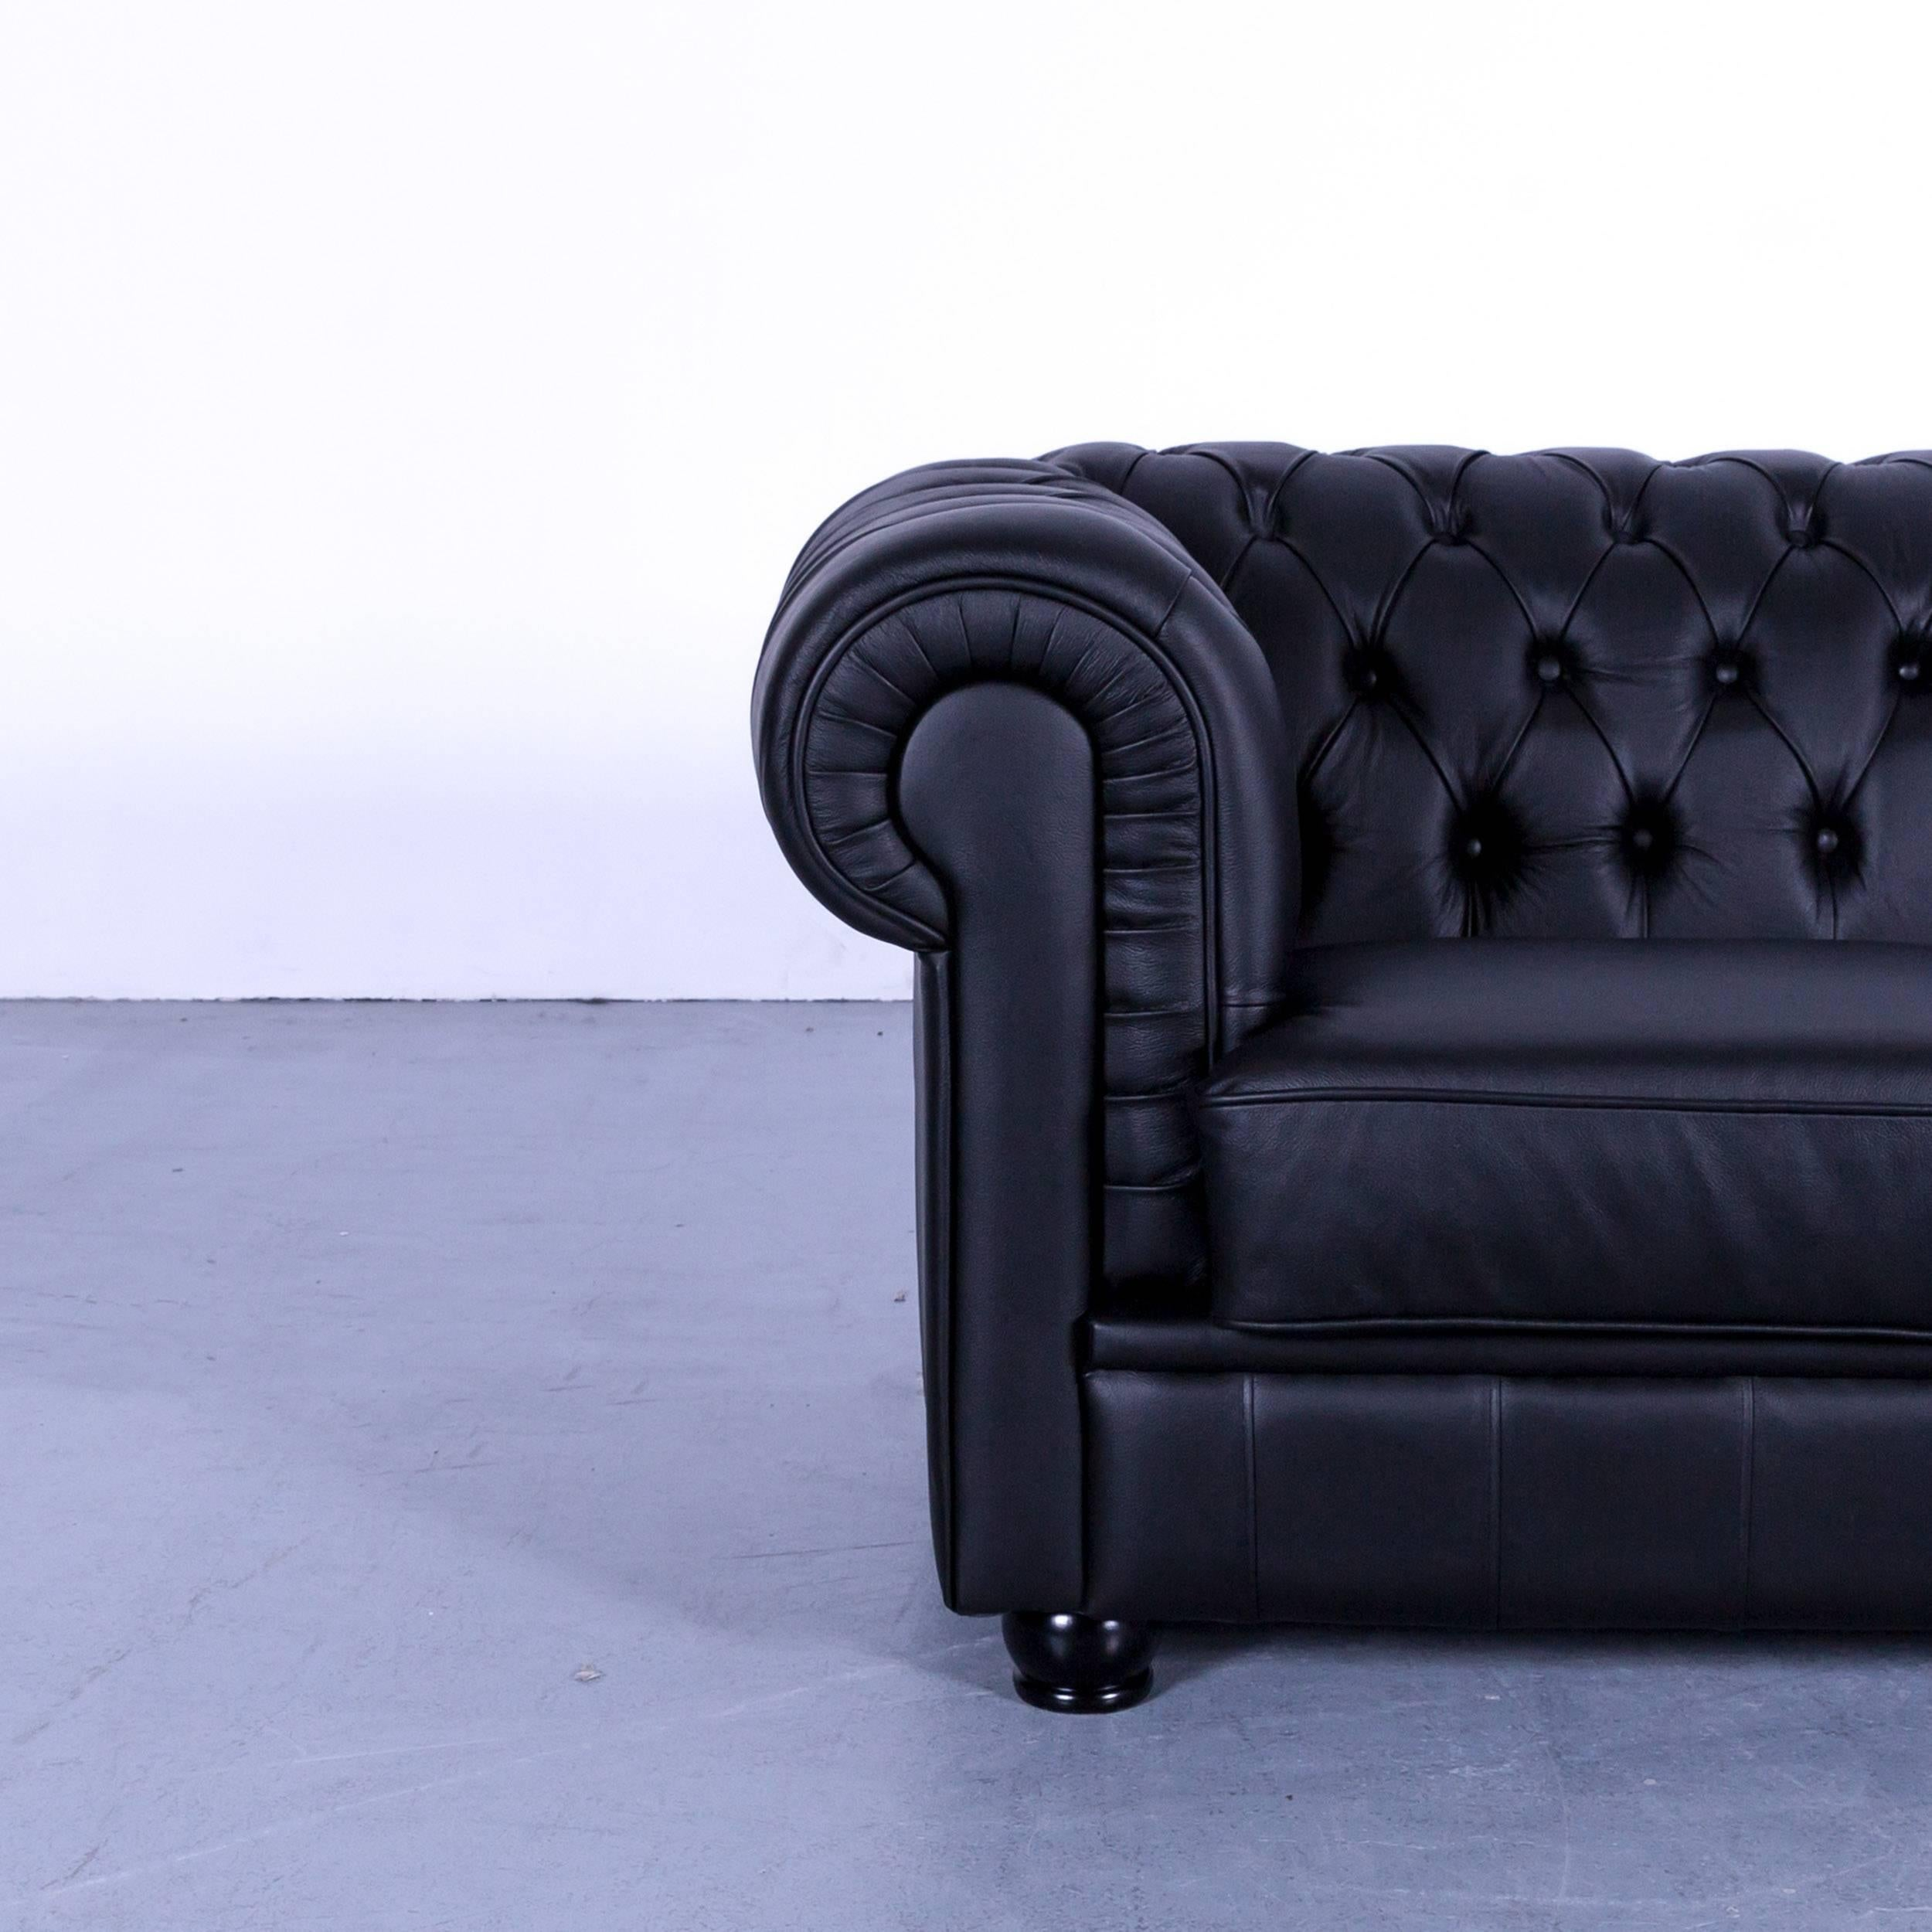 Sofa Max Winzer Max Winzer Chesterfield Sofa Black Leather Two Seat Couch Vintage Retro Rivets